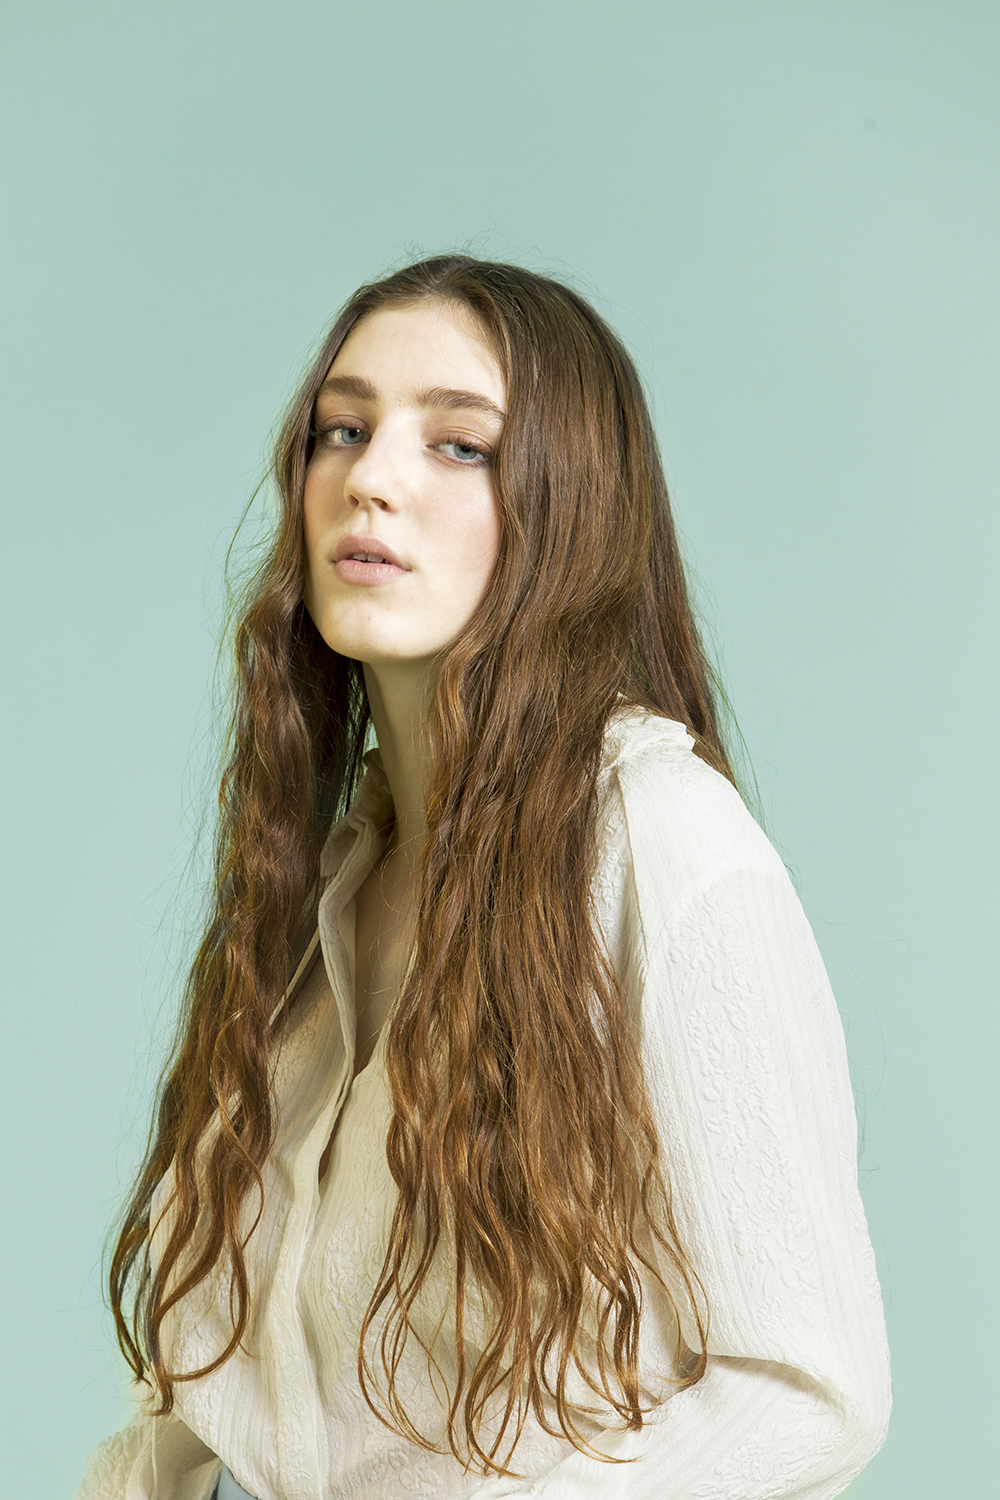 Birdy for Telegraph on Sunday